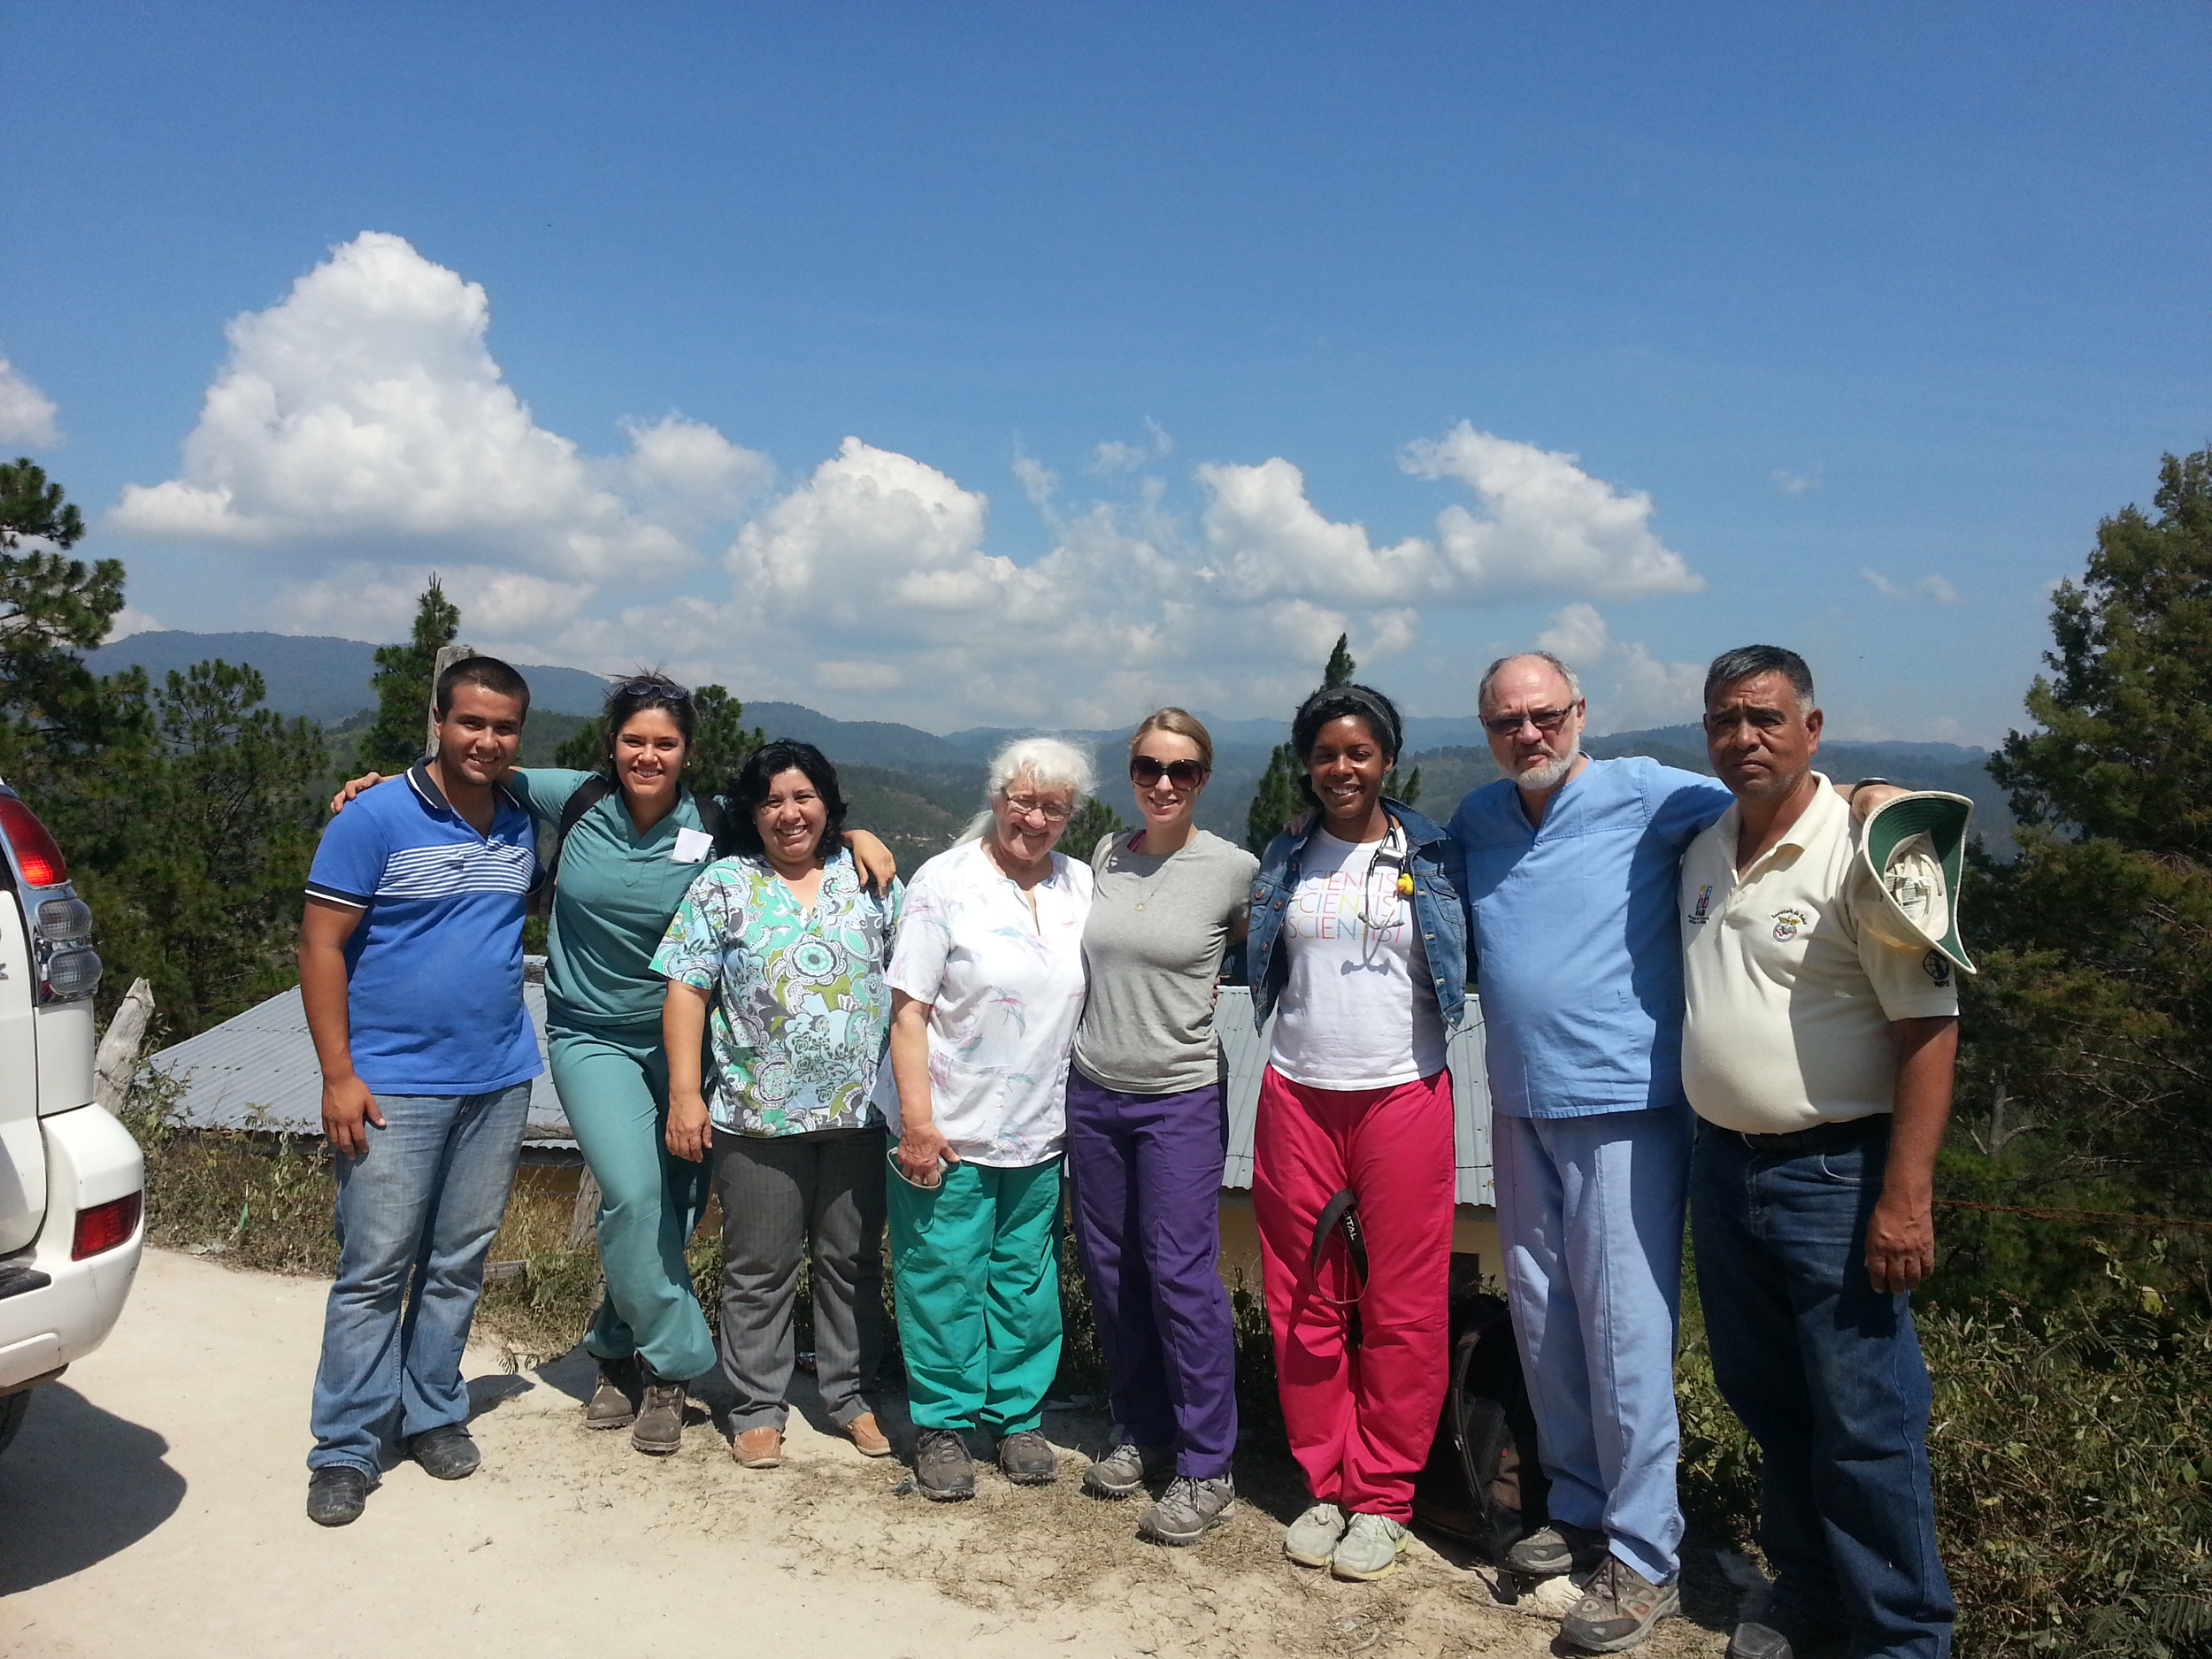 Group picture in front of the school. L-R Wilmer(Dr. Mabel's son who helped us translate), Alisha, Dr. Mabel, Esther, Danielle, Mallory, Dr. Gorodzinsky and Joaquim (our amazing driver)